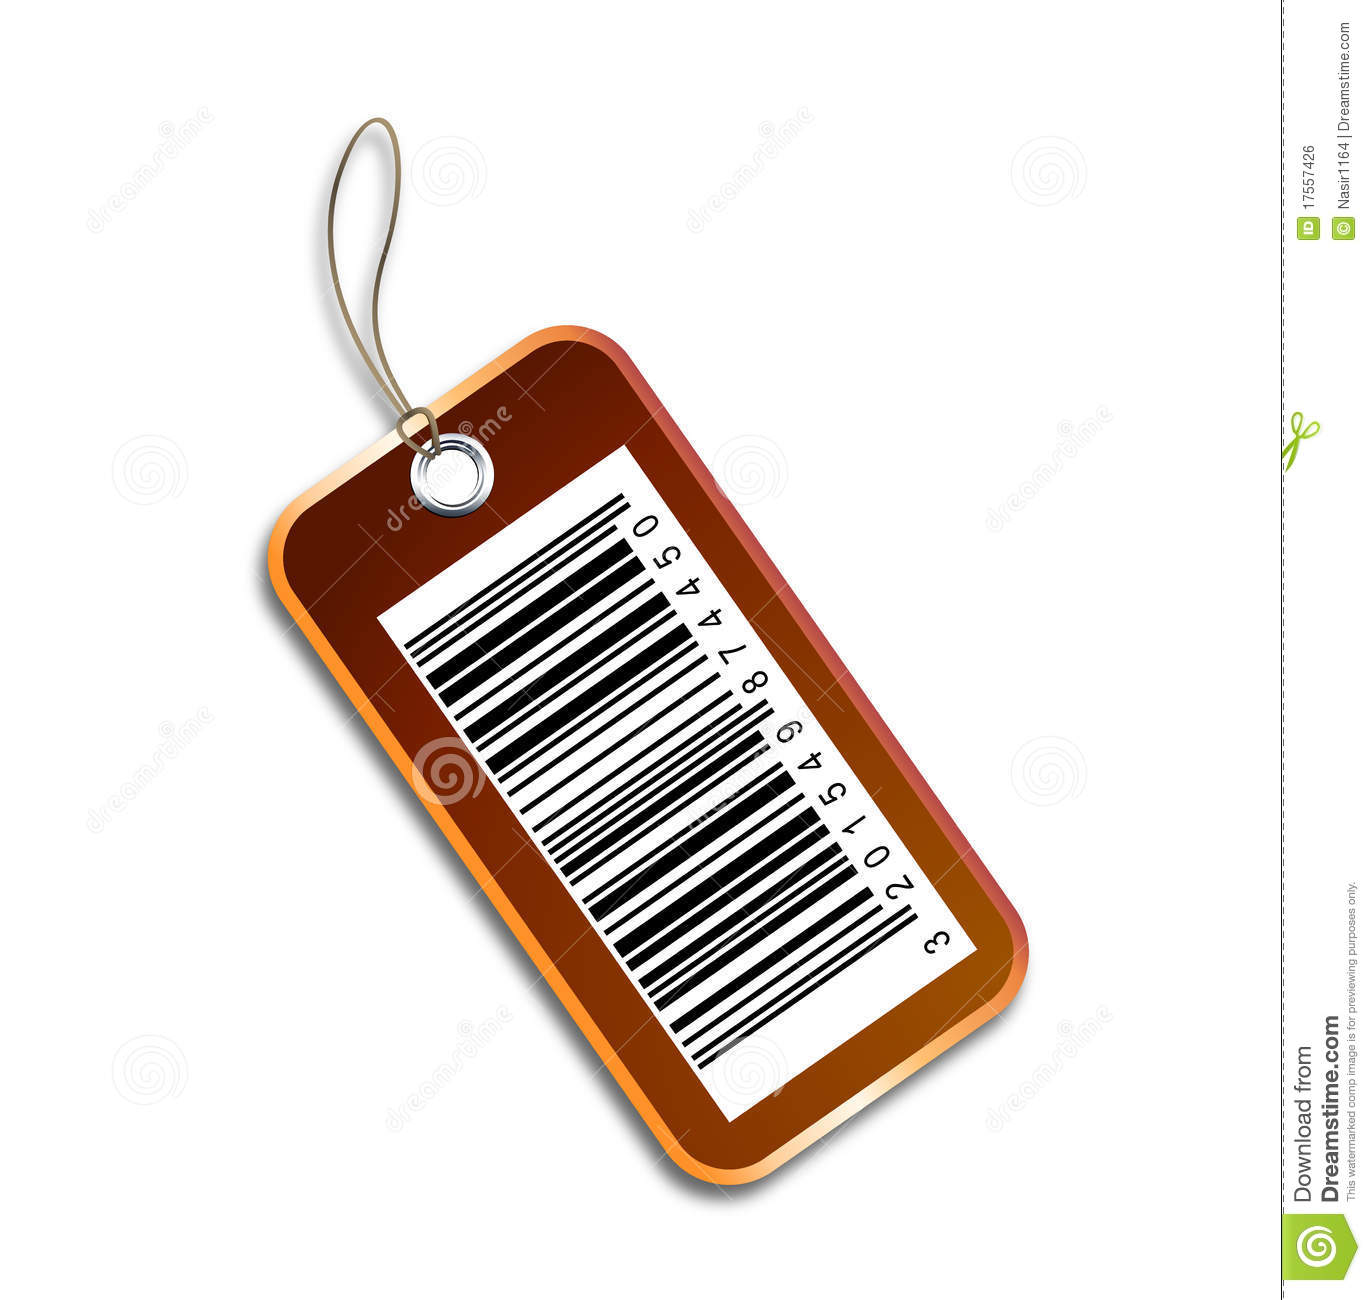 Library Management System with Barcode